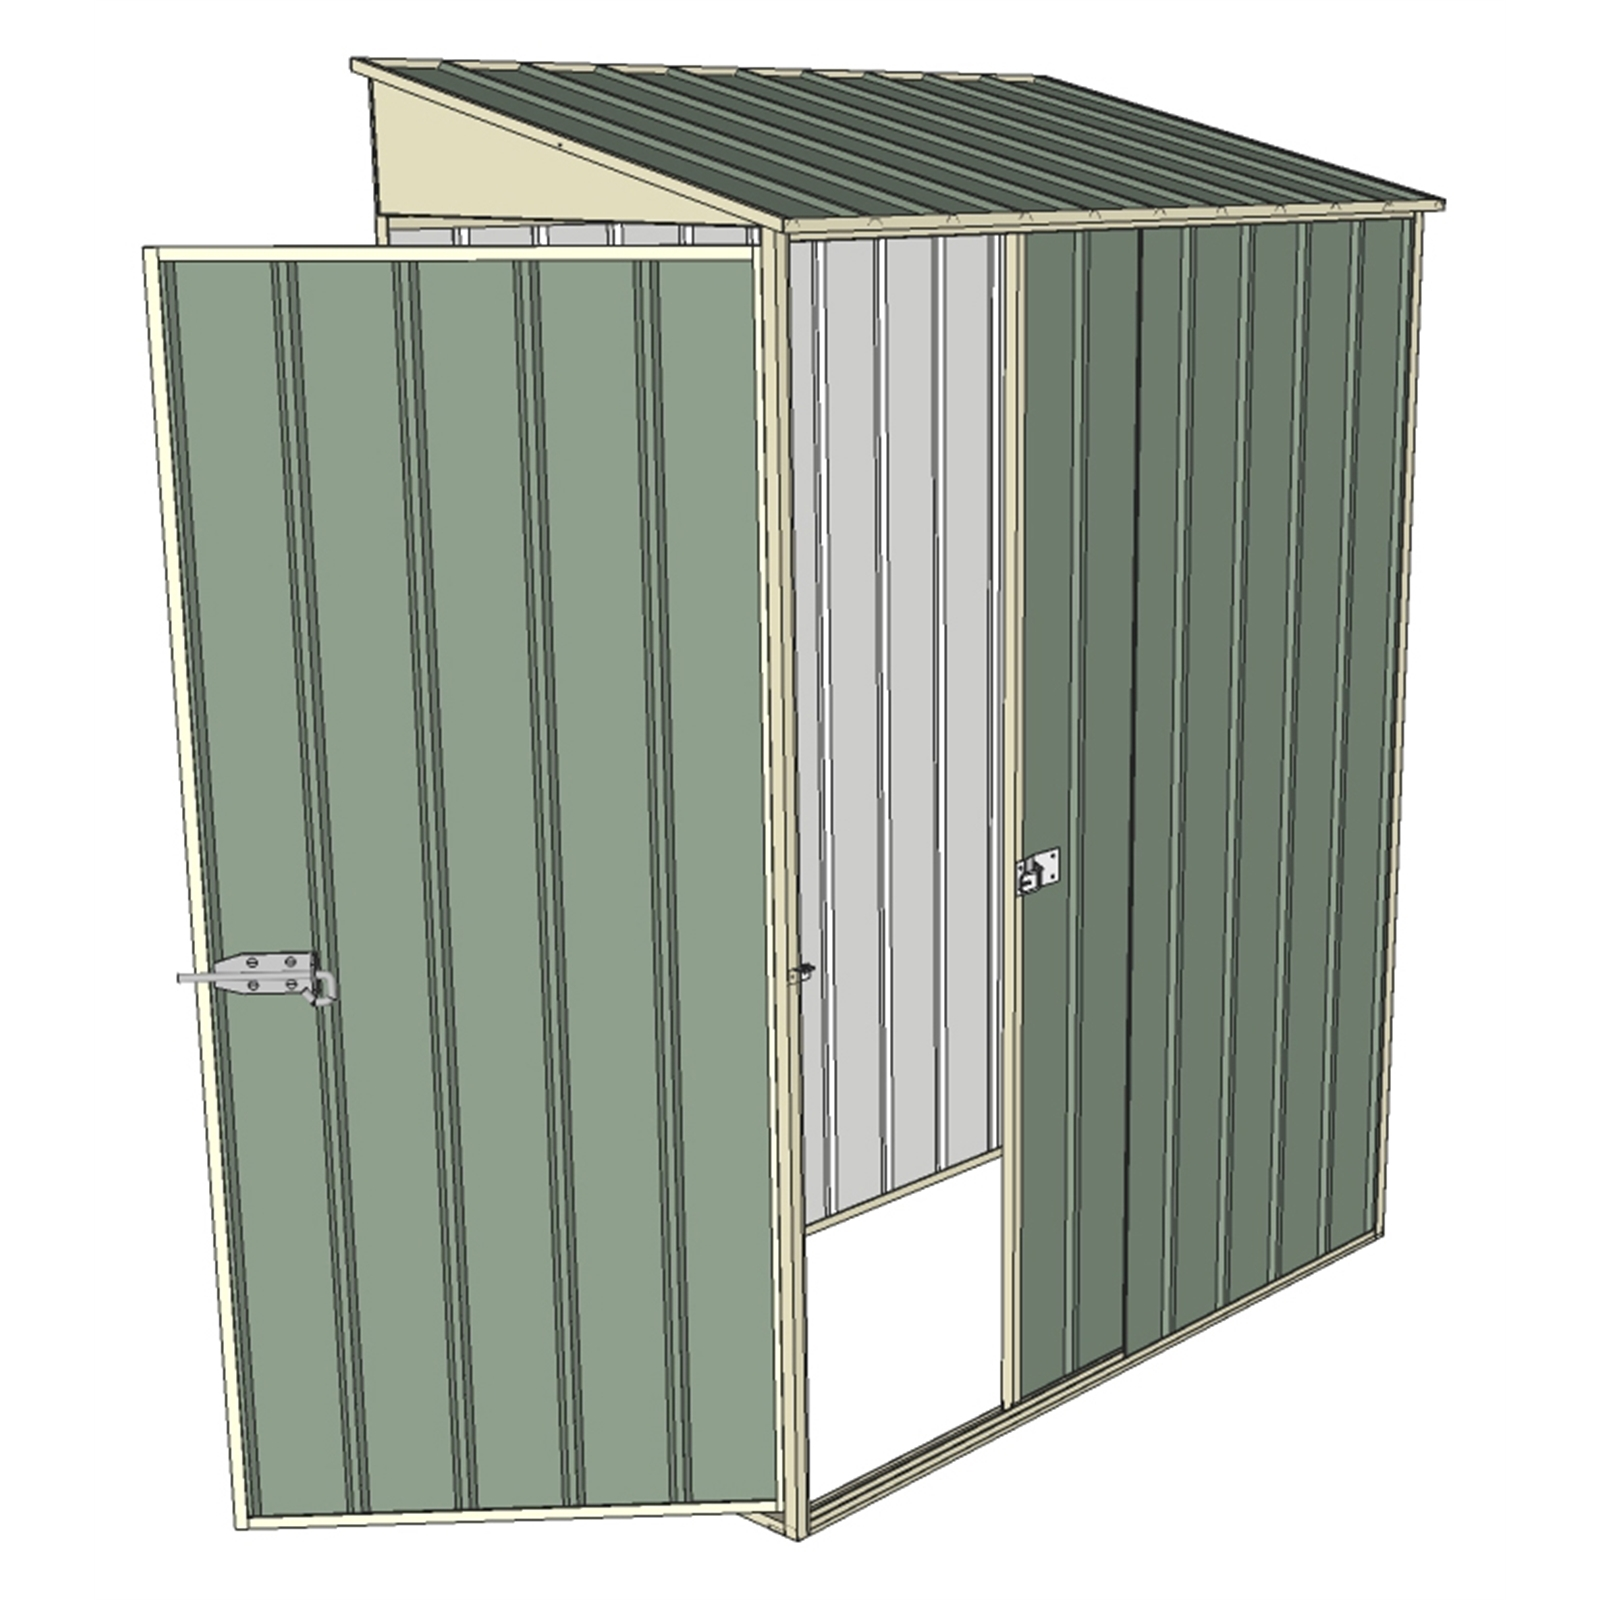 Build-a-Shed 1.5 x 0.8 x 2m Single Sliding Door Skillion Shed with Single Hinged Side Door - Green